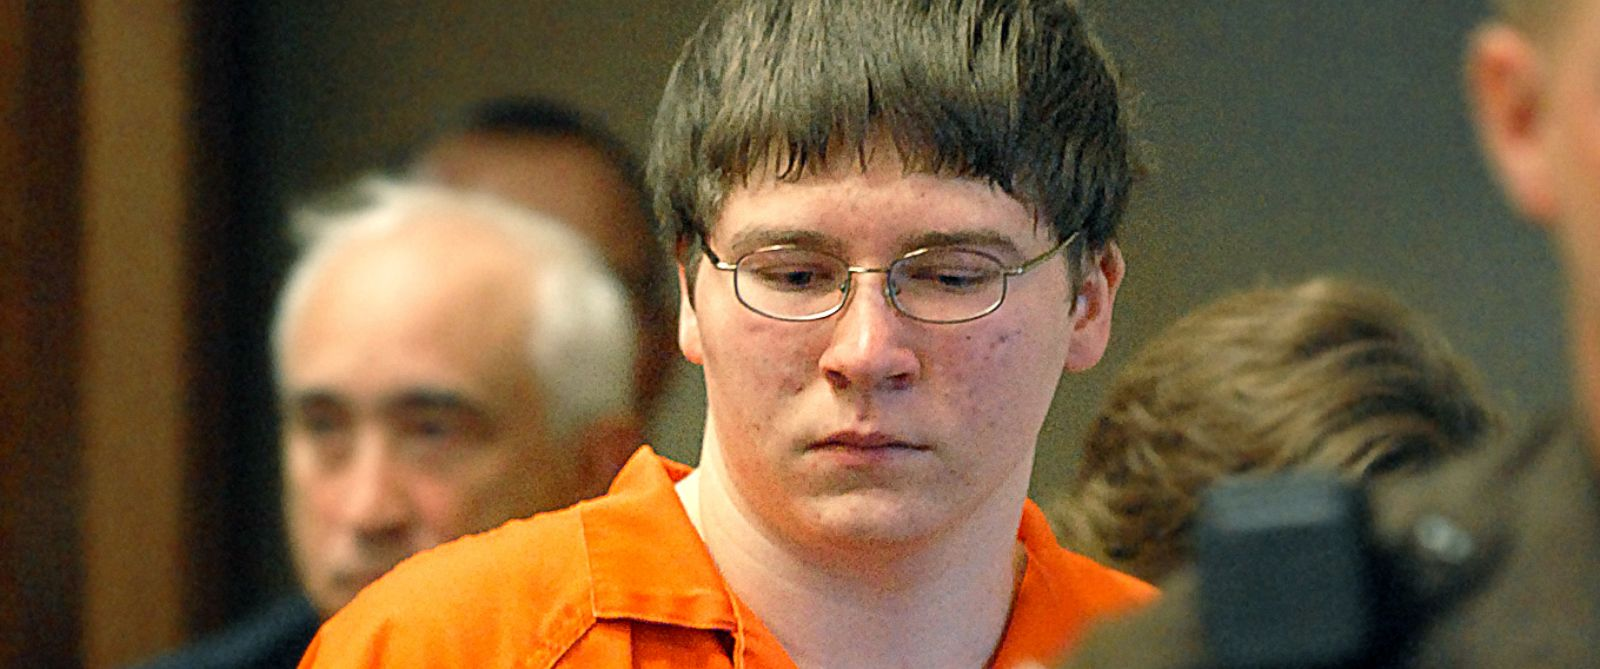 PHOTO: Brendan Dassey is escorted into court for his sentencing in Manitowoc, Wis., Aug. 2, 2007.